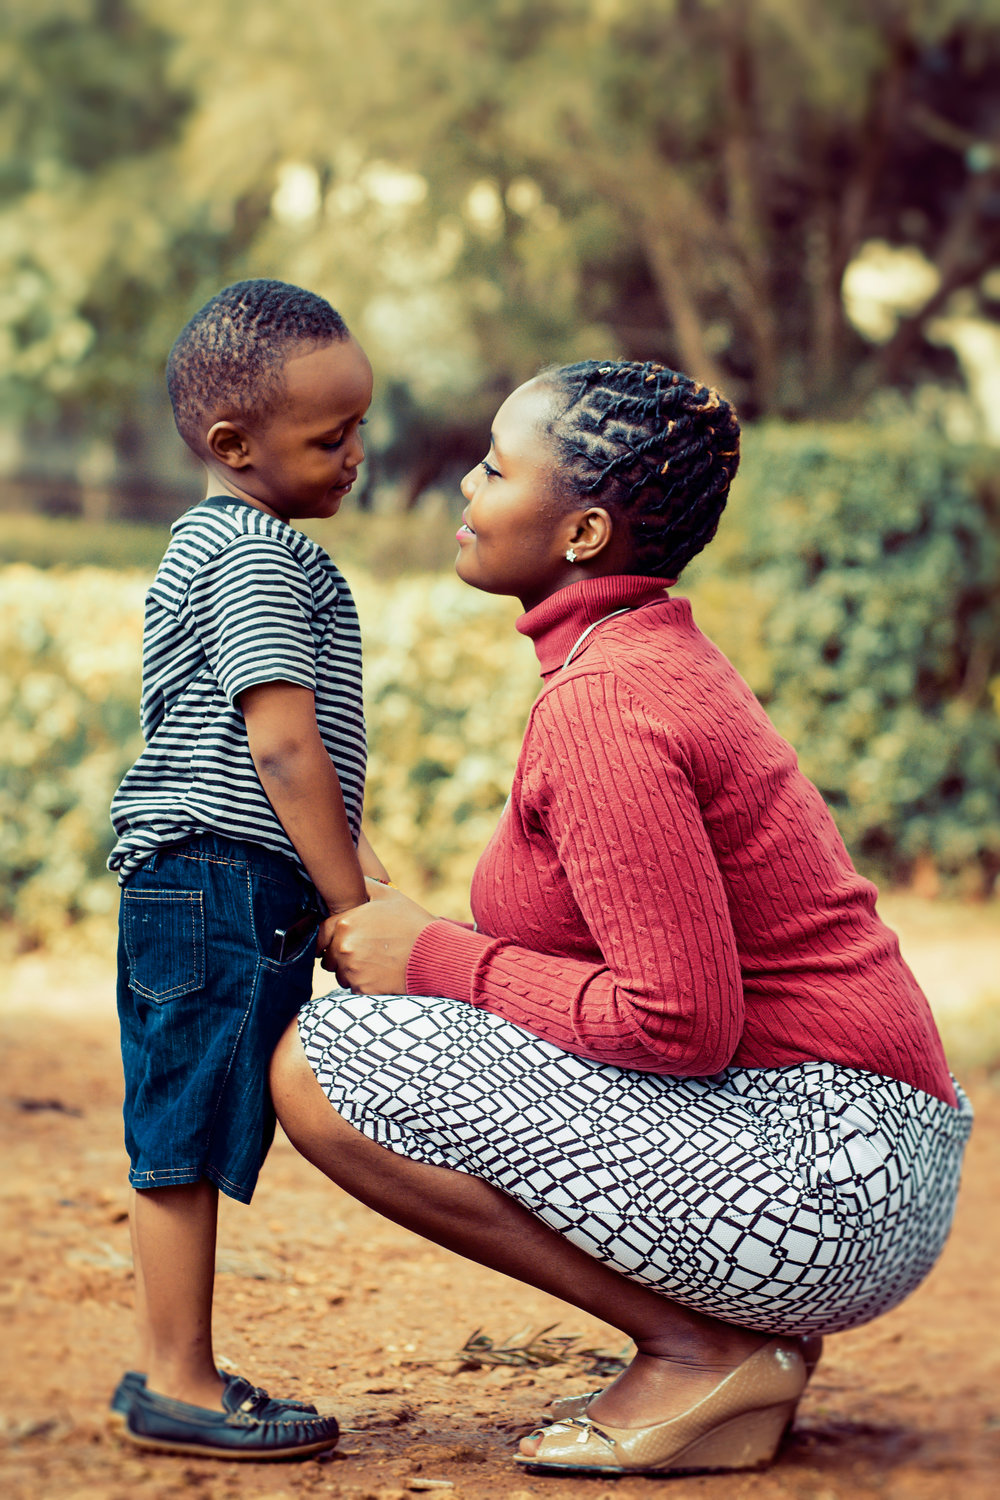 Canva - Tilt Shift Lens Photography of Woman Wearing Red Sweater and White Skirt While Holding a Boy Wearing White and Black Crew-neck Shirt and Blue Denim Short.jpg